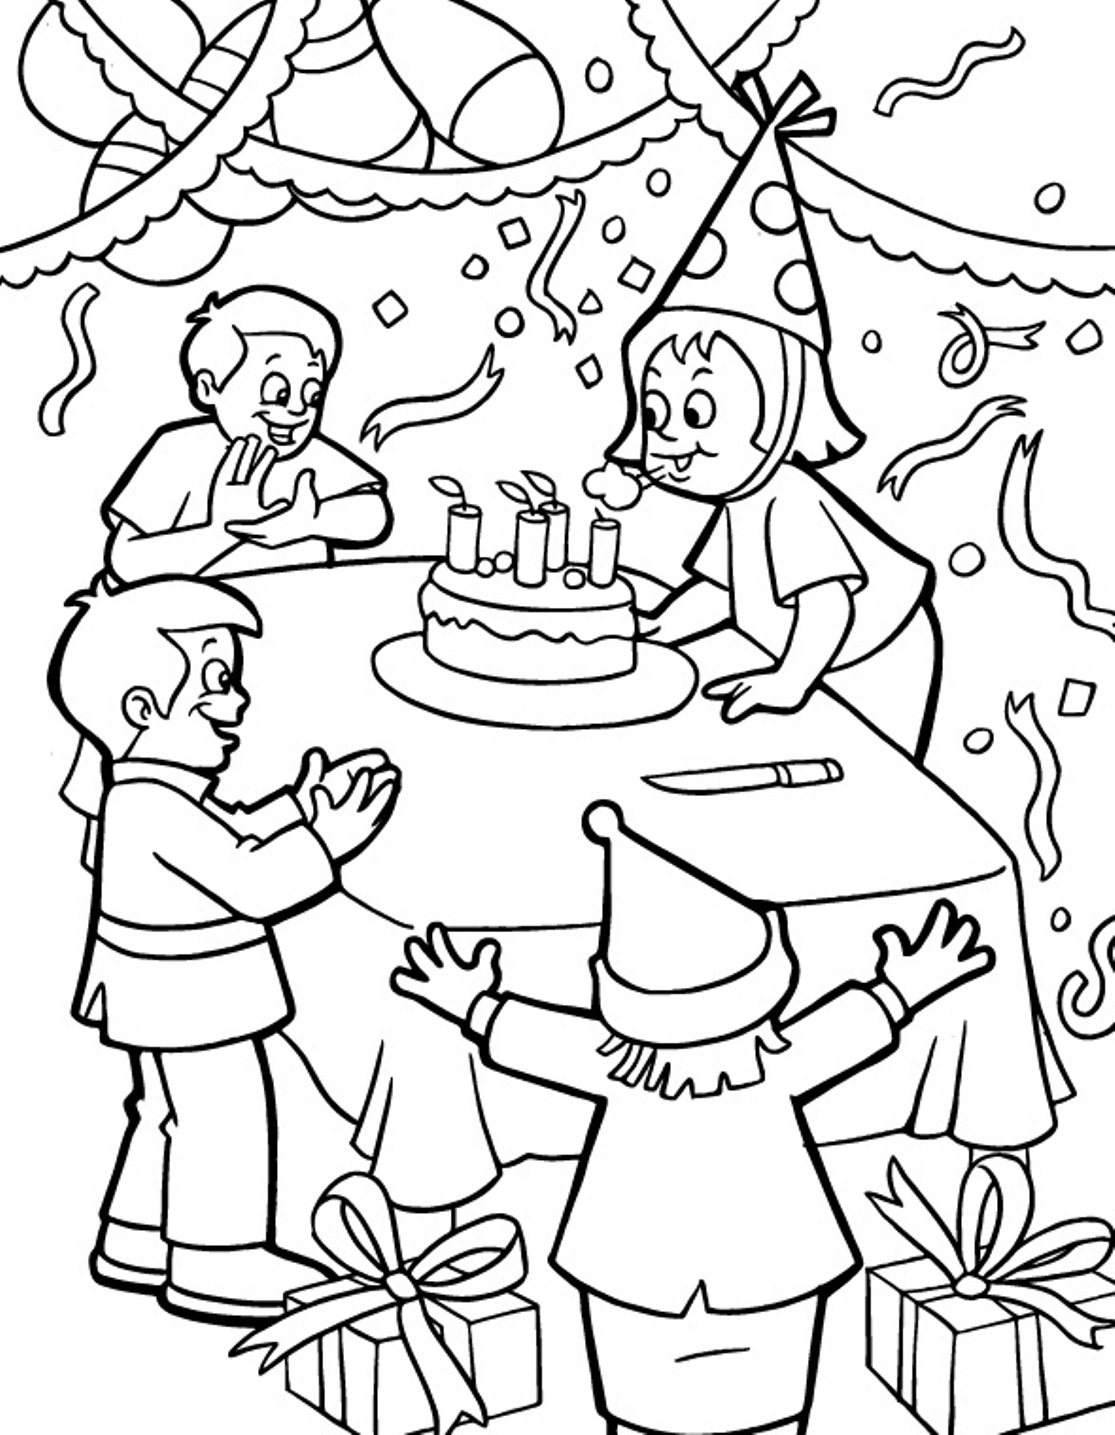 birthday party scene for drawing ; birthday%2520scene%2520drawing%2520;%2520birthday-party-scene-for-drawing-emejing-coloring-birthday-party-pictures-best-printable-coloring